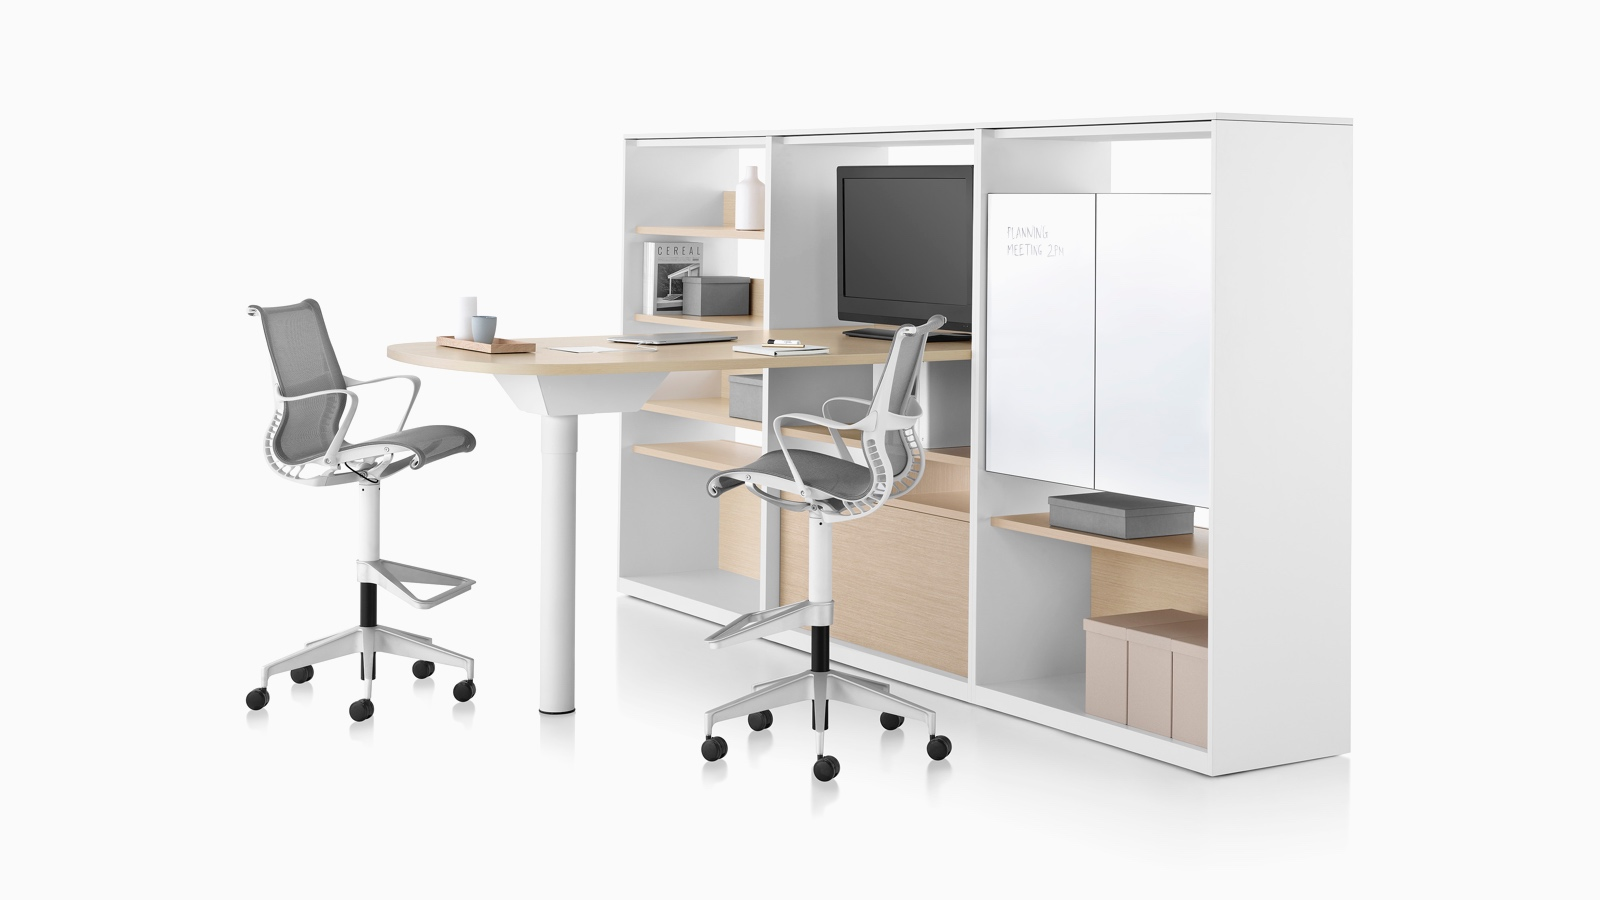 A Canvas Group collaboration space with white surface, display, storage, and grey Cosm office stools.